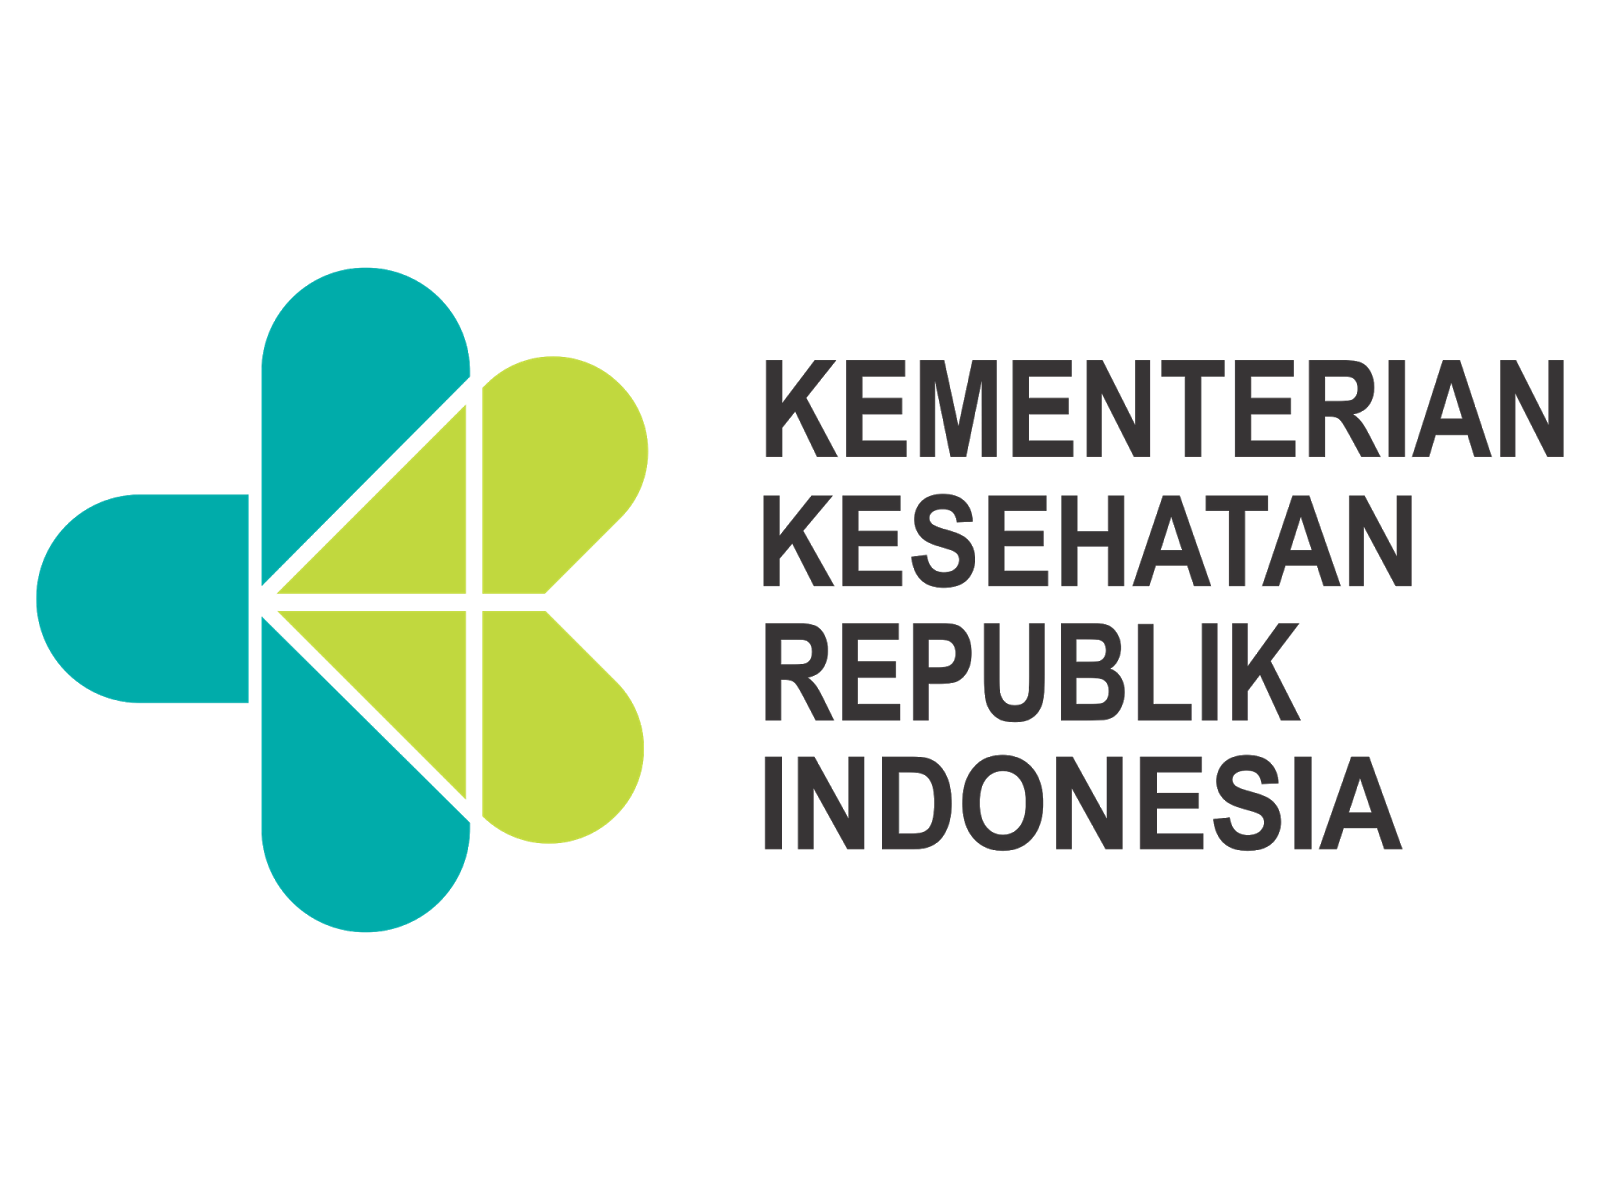 Download Logo KemenKes RI New CDR PNG HD - WarVec1